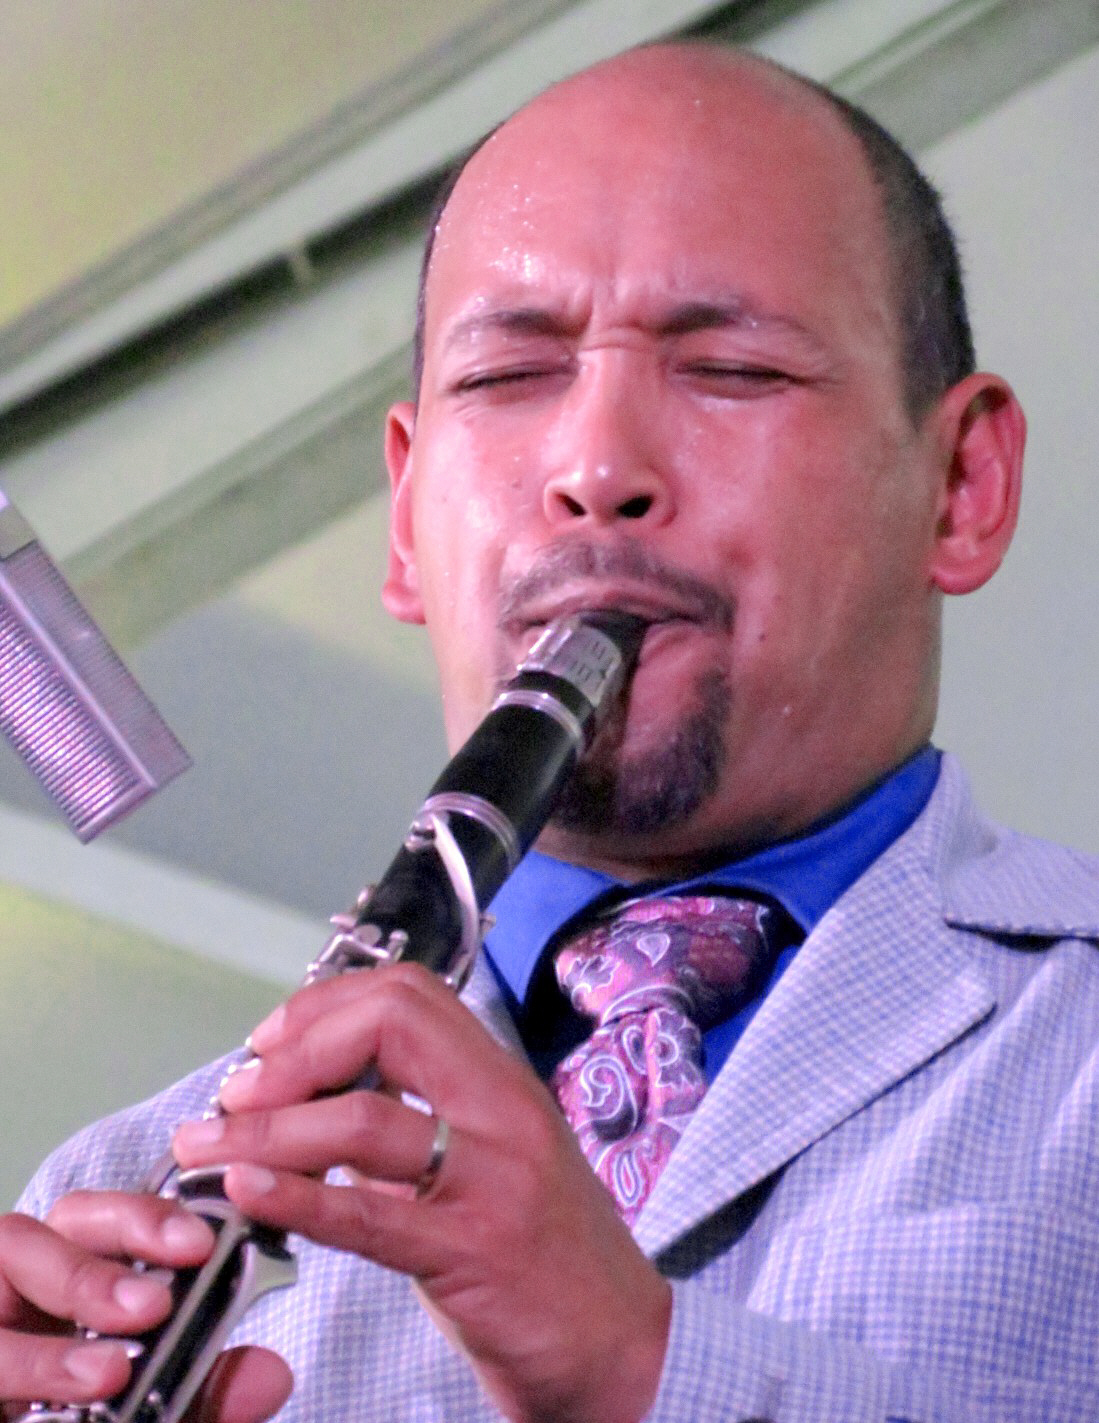 Evan christopher leading clarinet road at 2013 chicago jazz festival